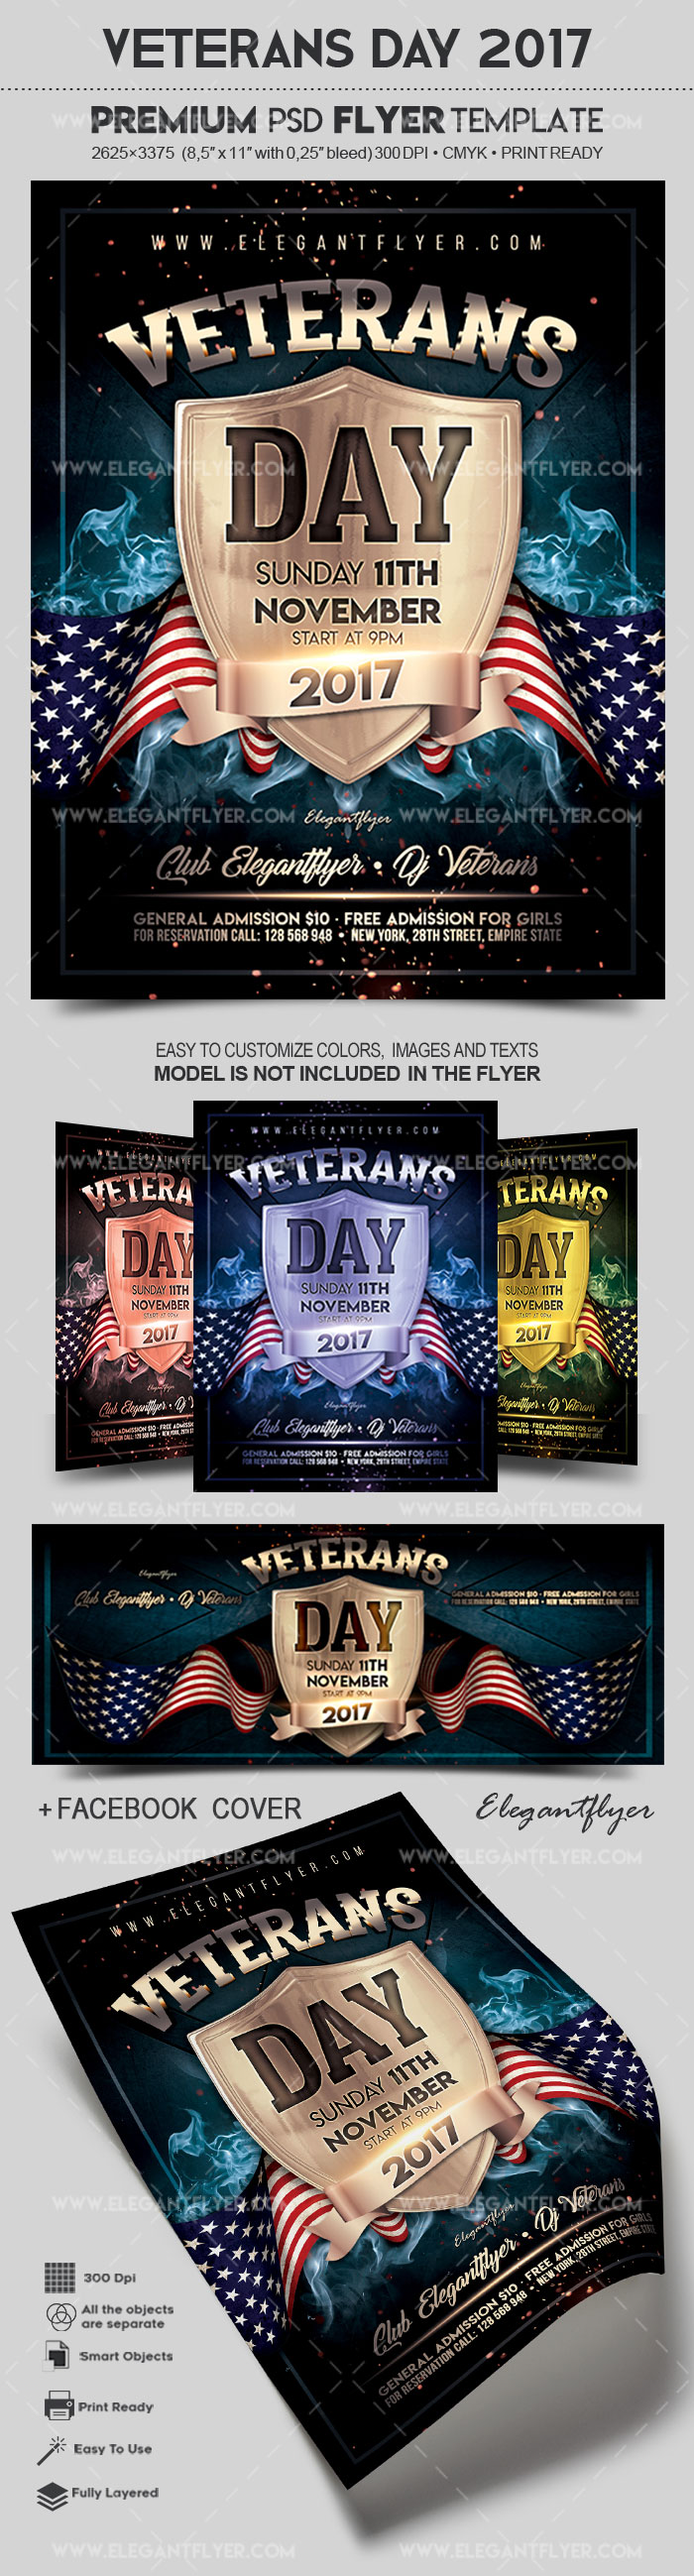 Veterans Day 2017 – Flyer PSD Template